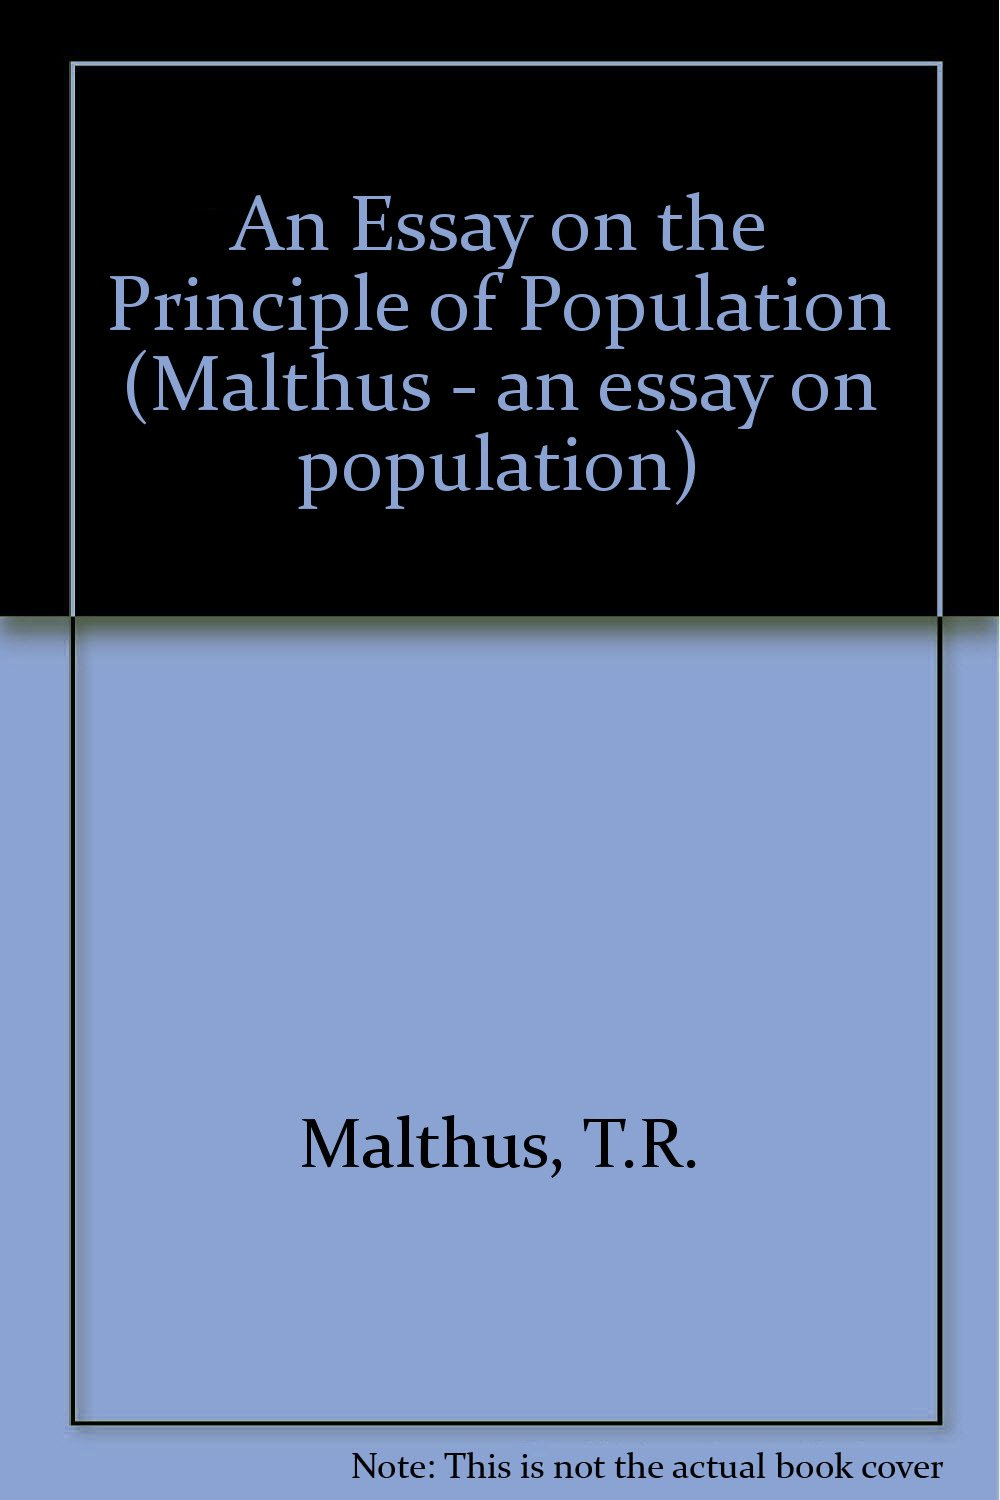 009 Essay Example Thomas Malthus An On The Principle Of Population Marvelous Summary Analysis Argued In His (1798) That Full